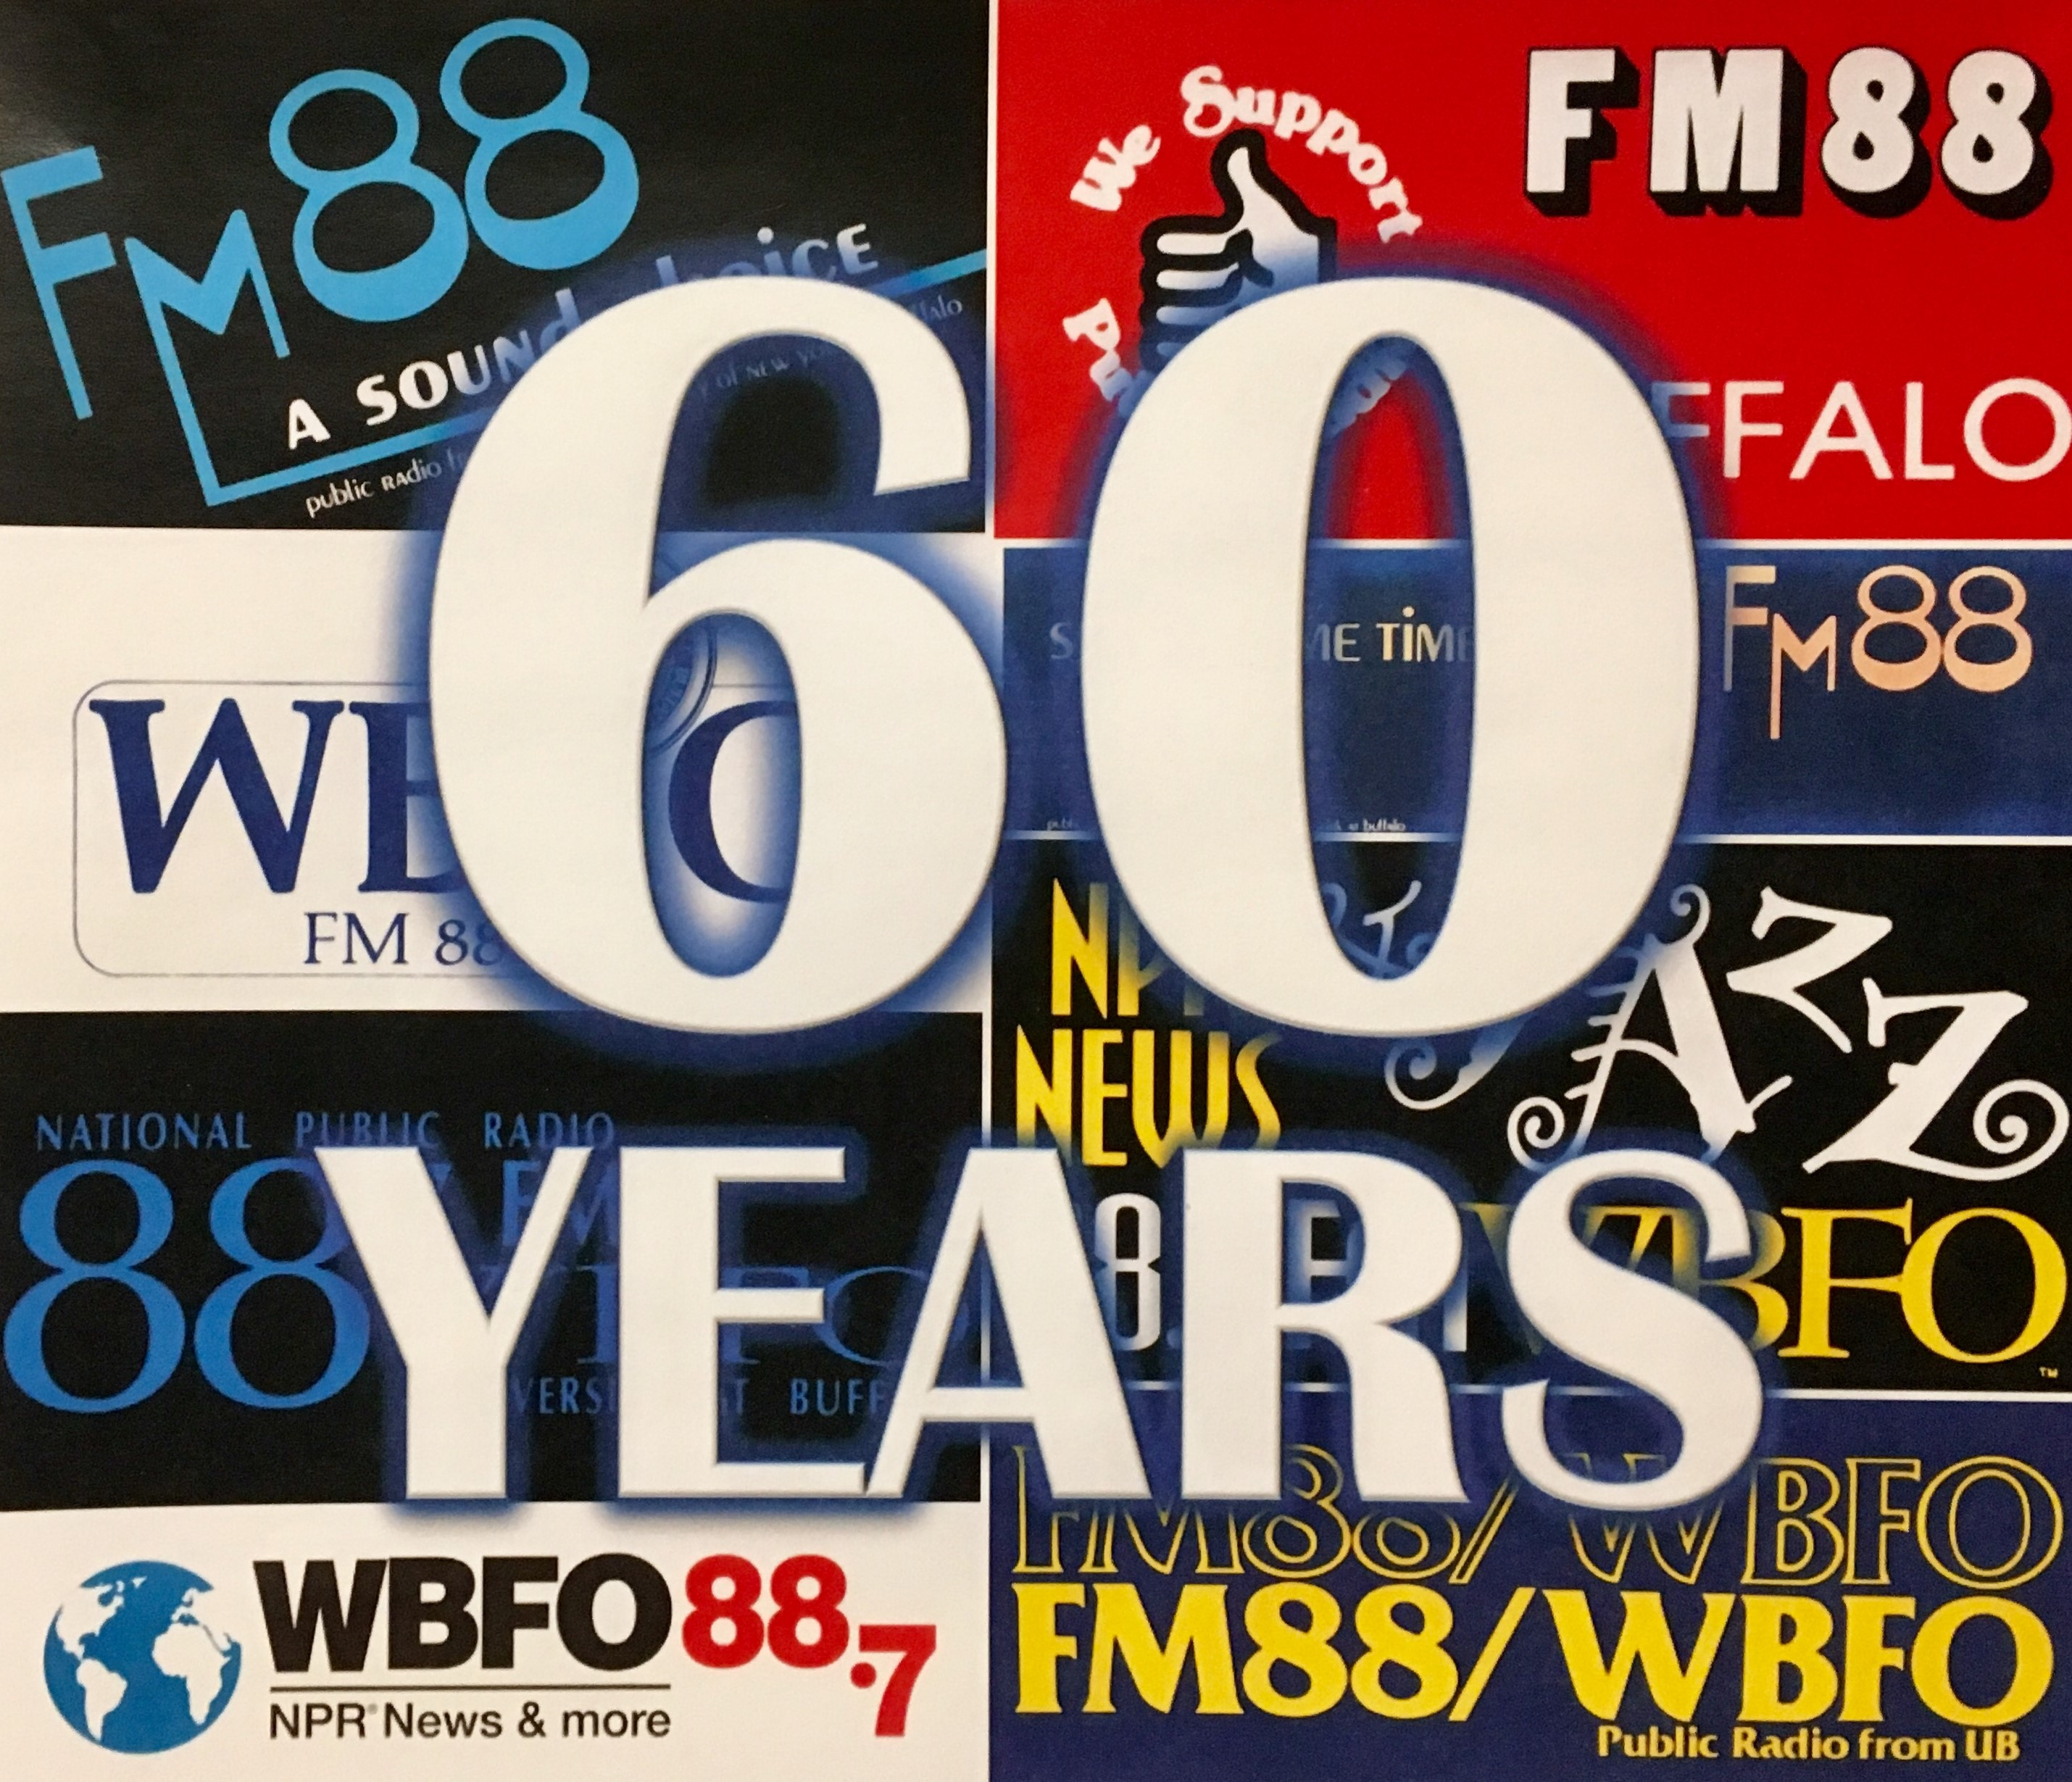 WBFO celebrates 60 years of broadcasting in WNY